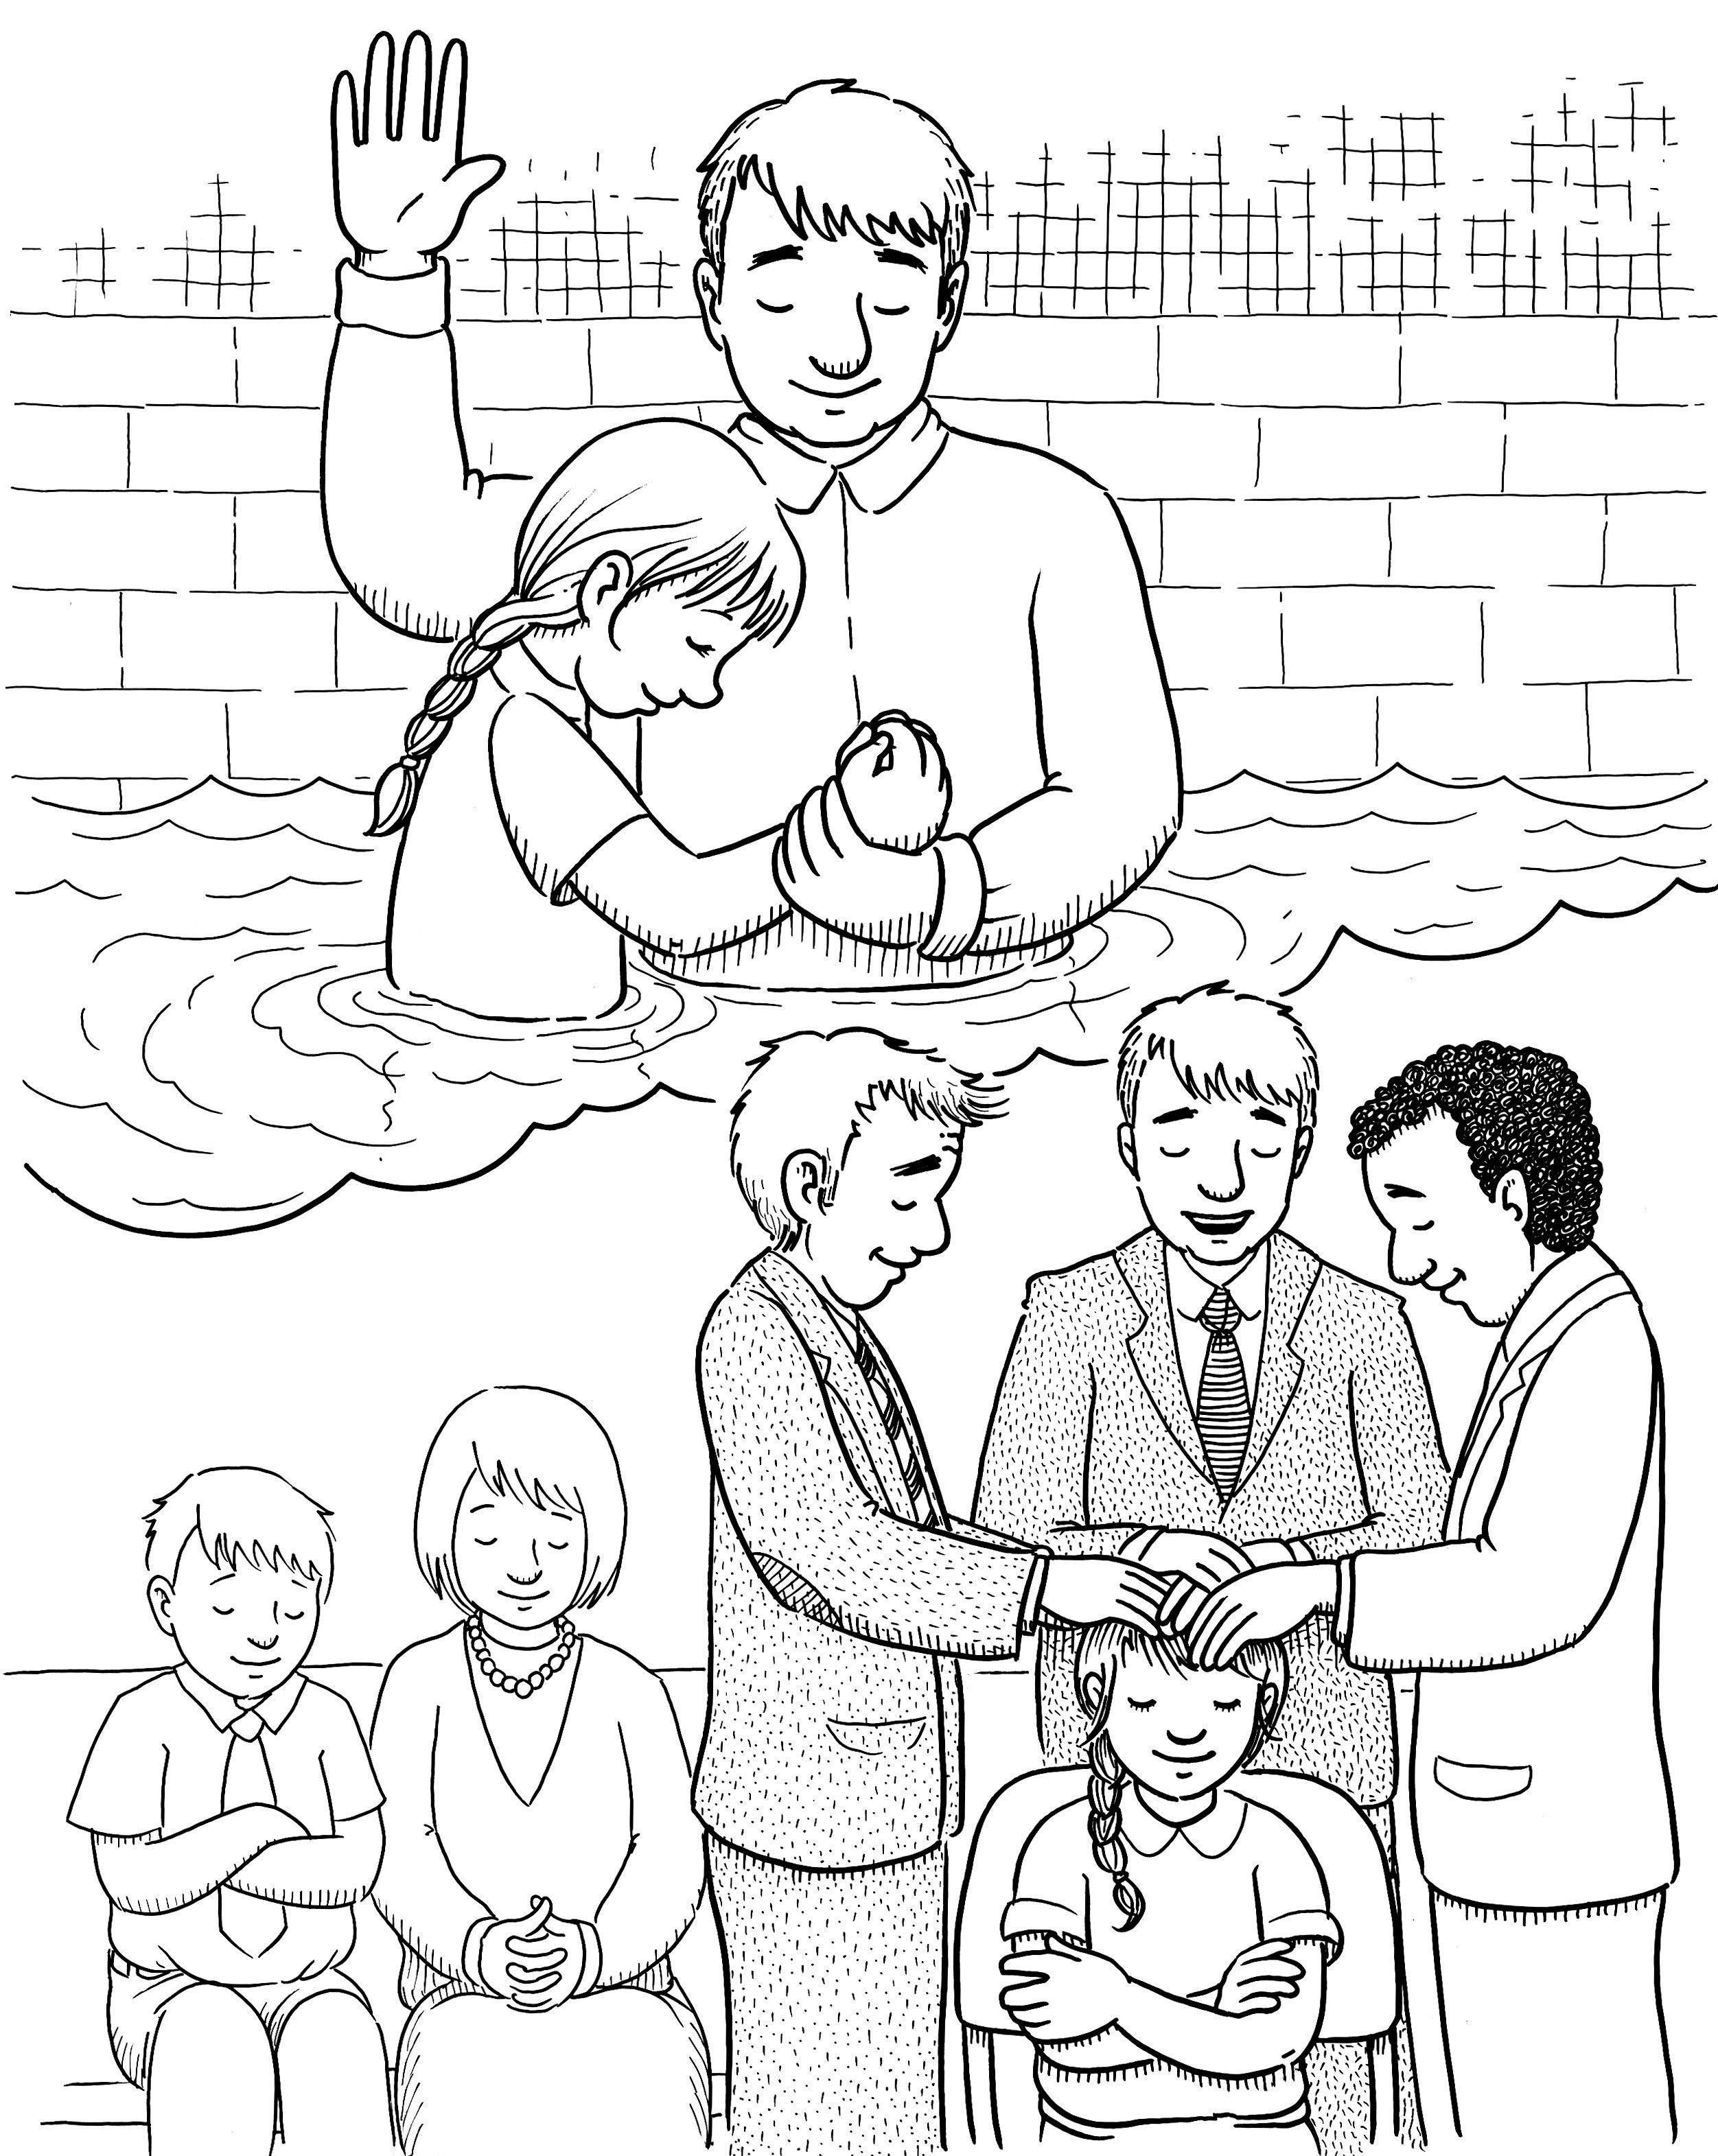 A young girl is baptized and then receives the gift of the Holy Ghost.